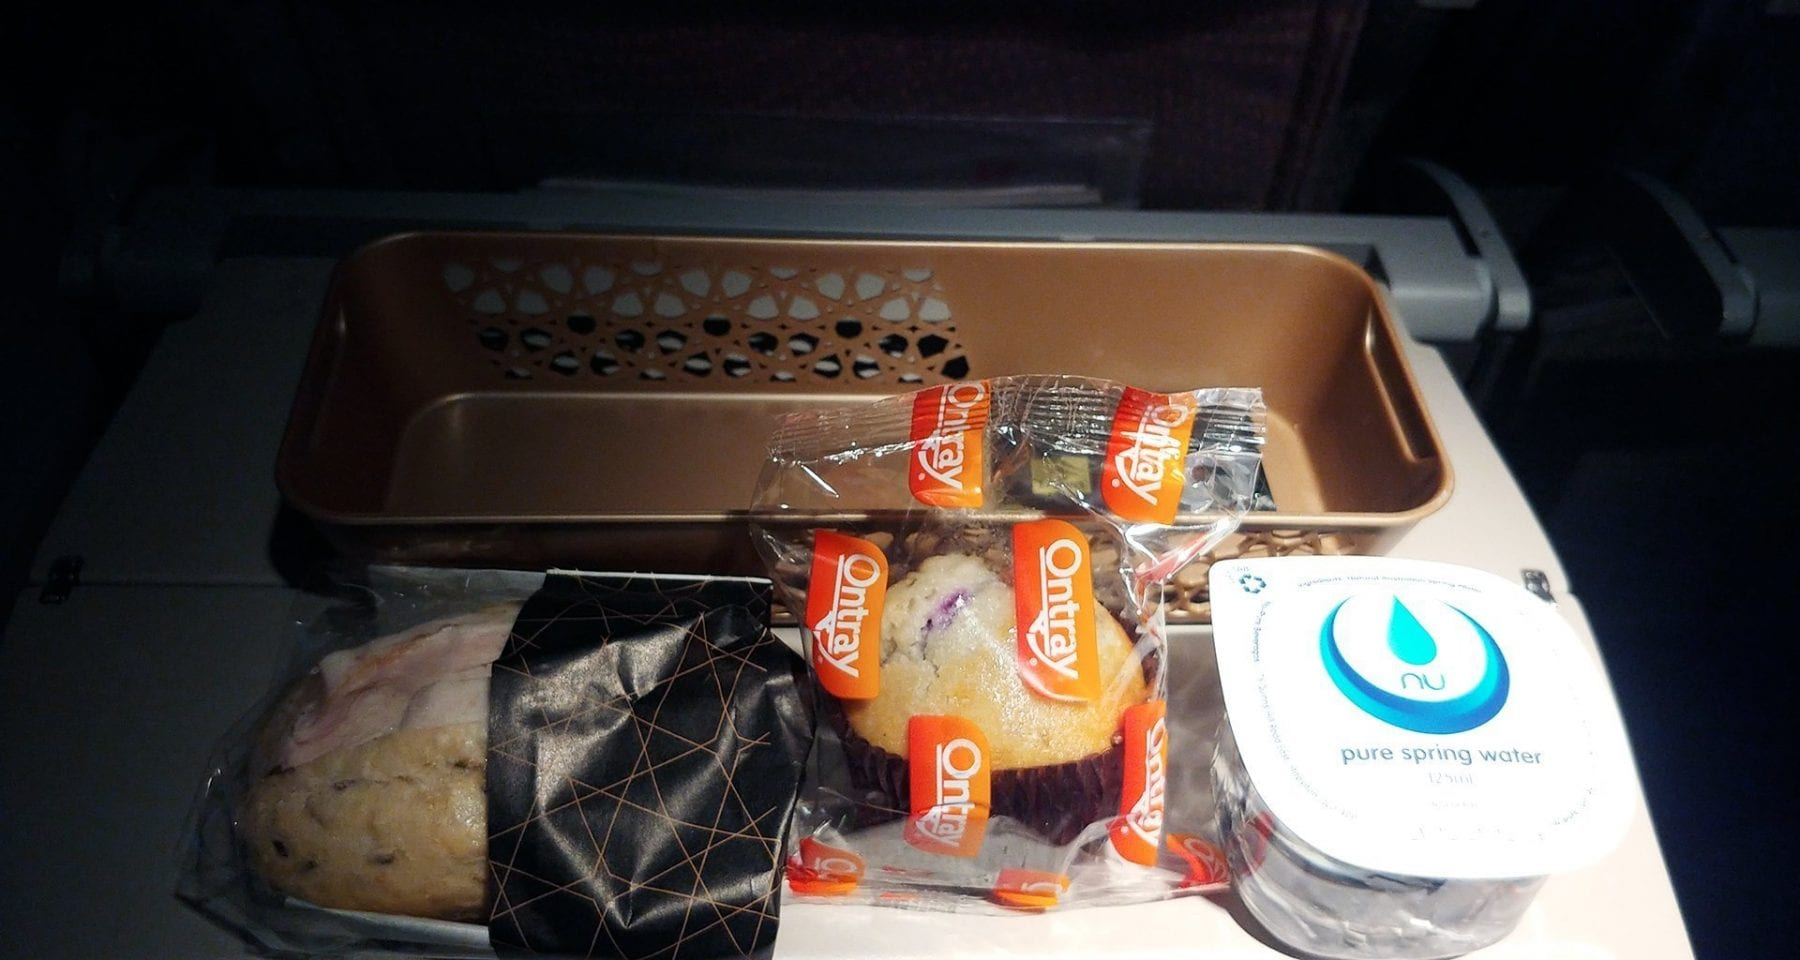 Emirates economy class second meal service